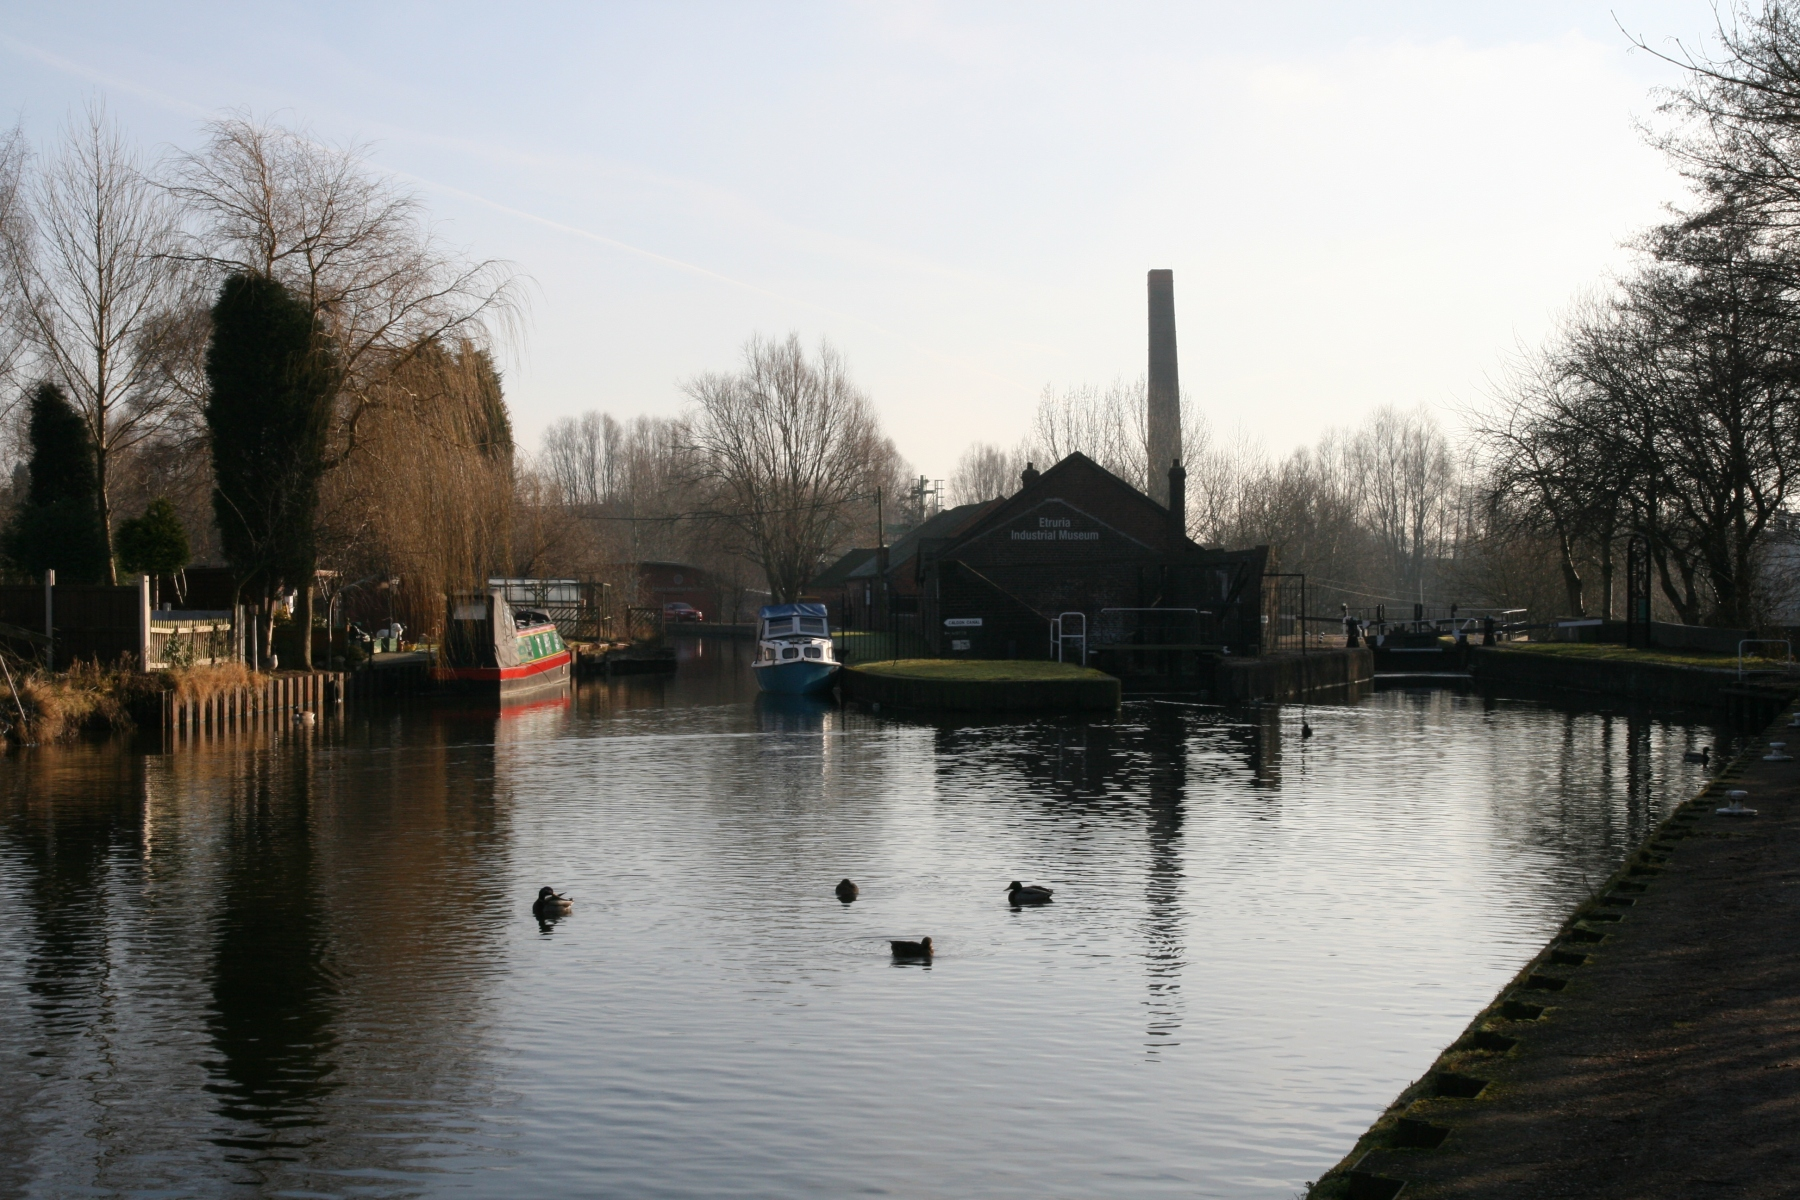 JUNCTION OF THE CALDON AND TRENT AND MERSEY CANALS